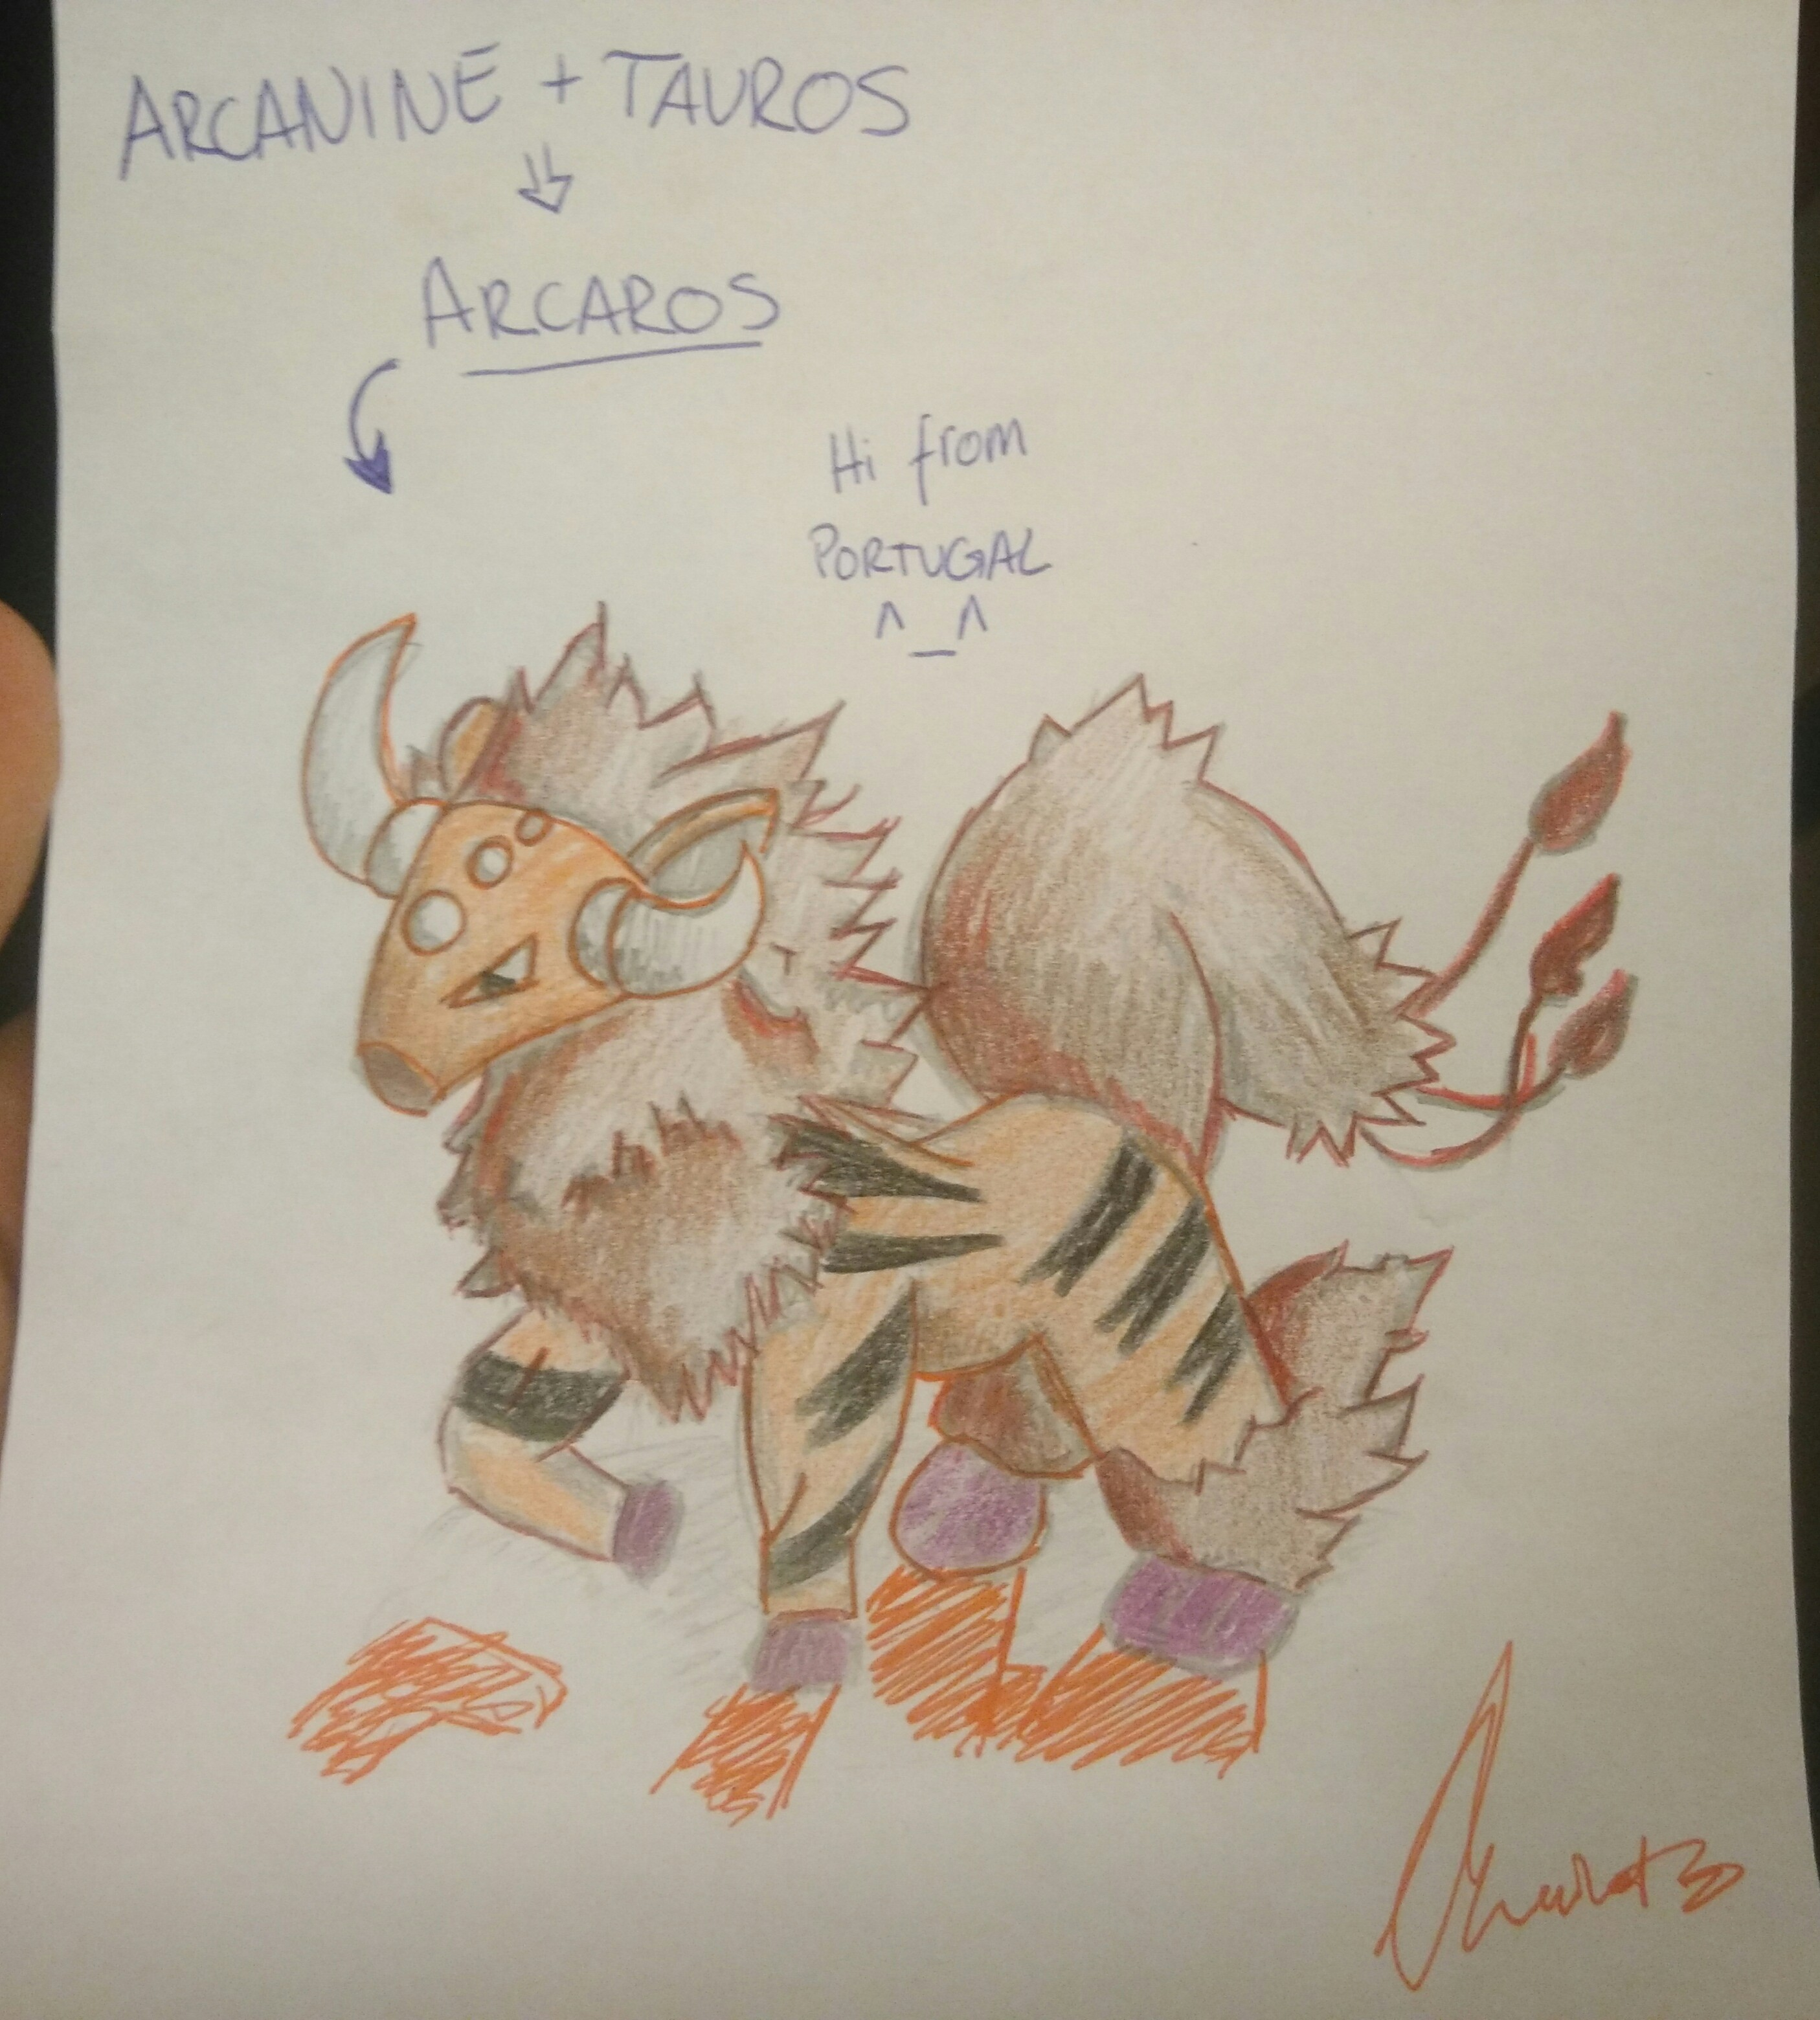 Arceos came to destroy [Taurus + arcanine]